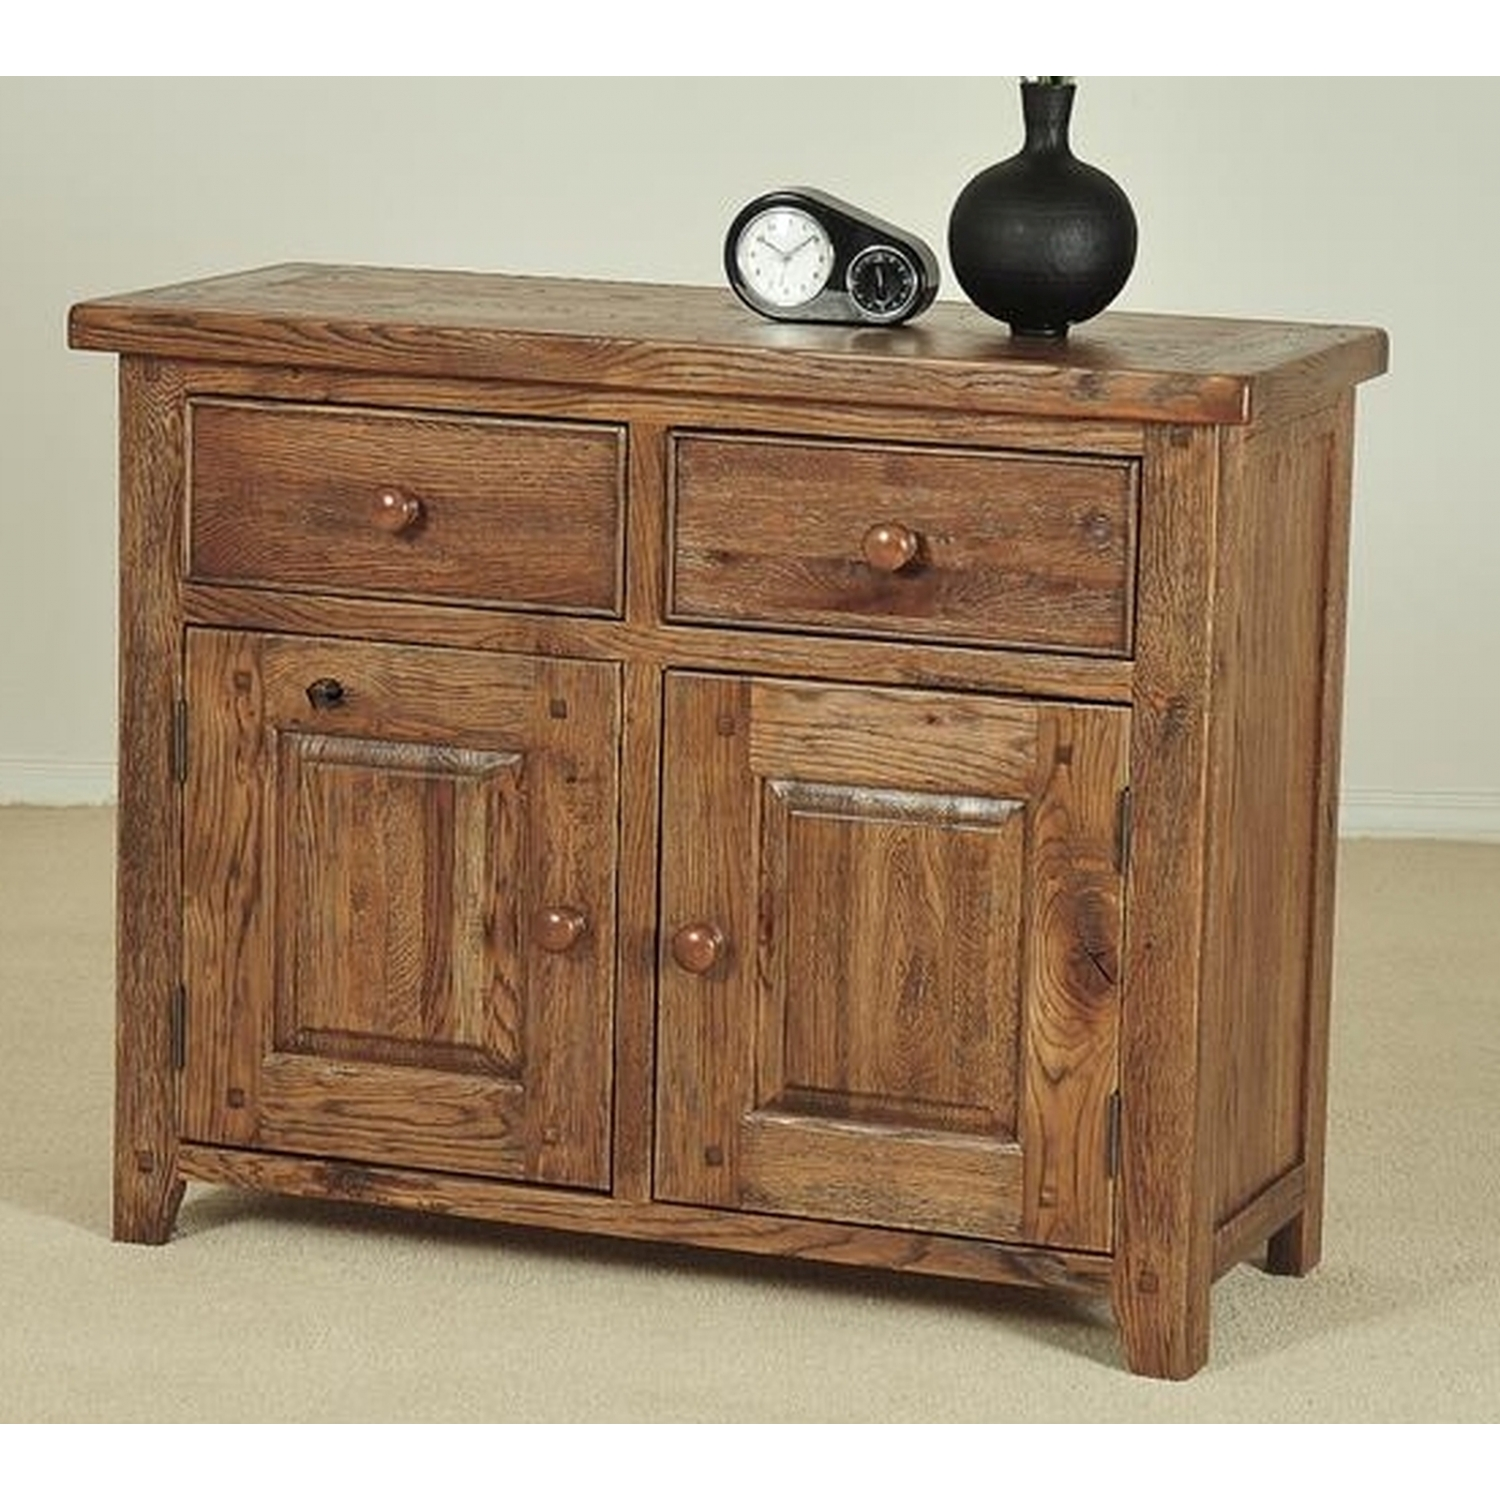 durham solid oak living dining room furniture small sideboard ebay